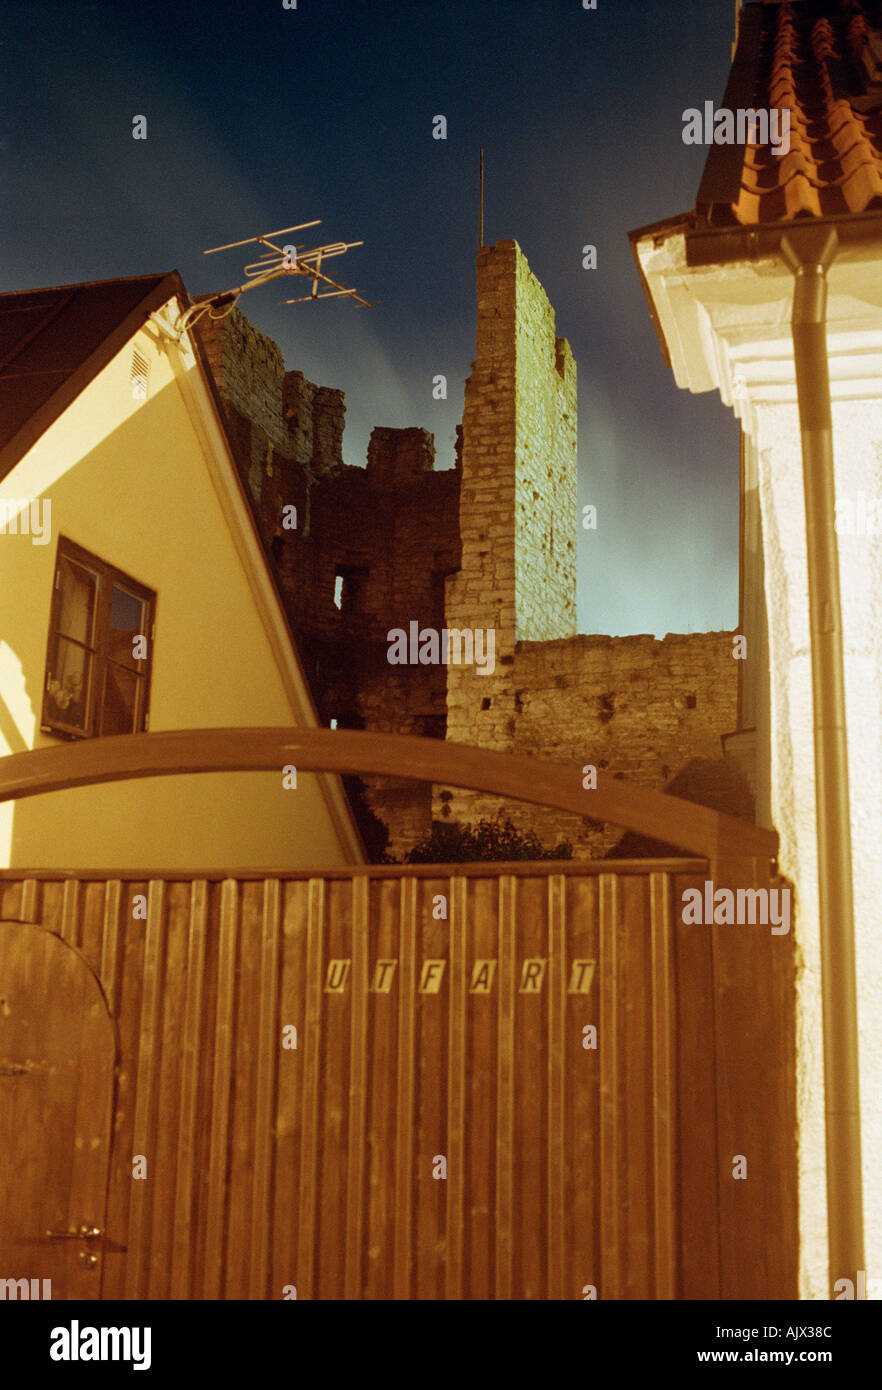 the street door is locked in the evening  - Stock Image